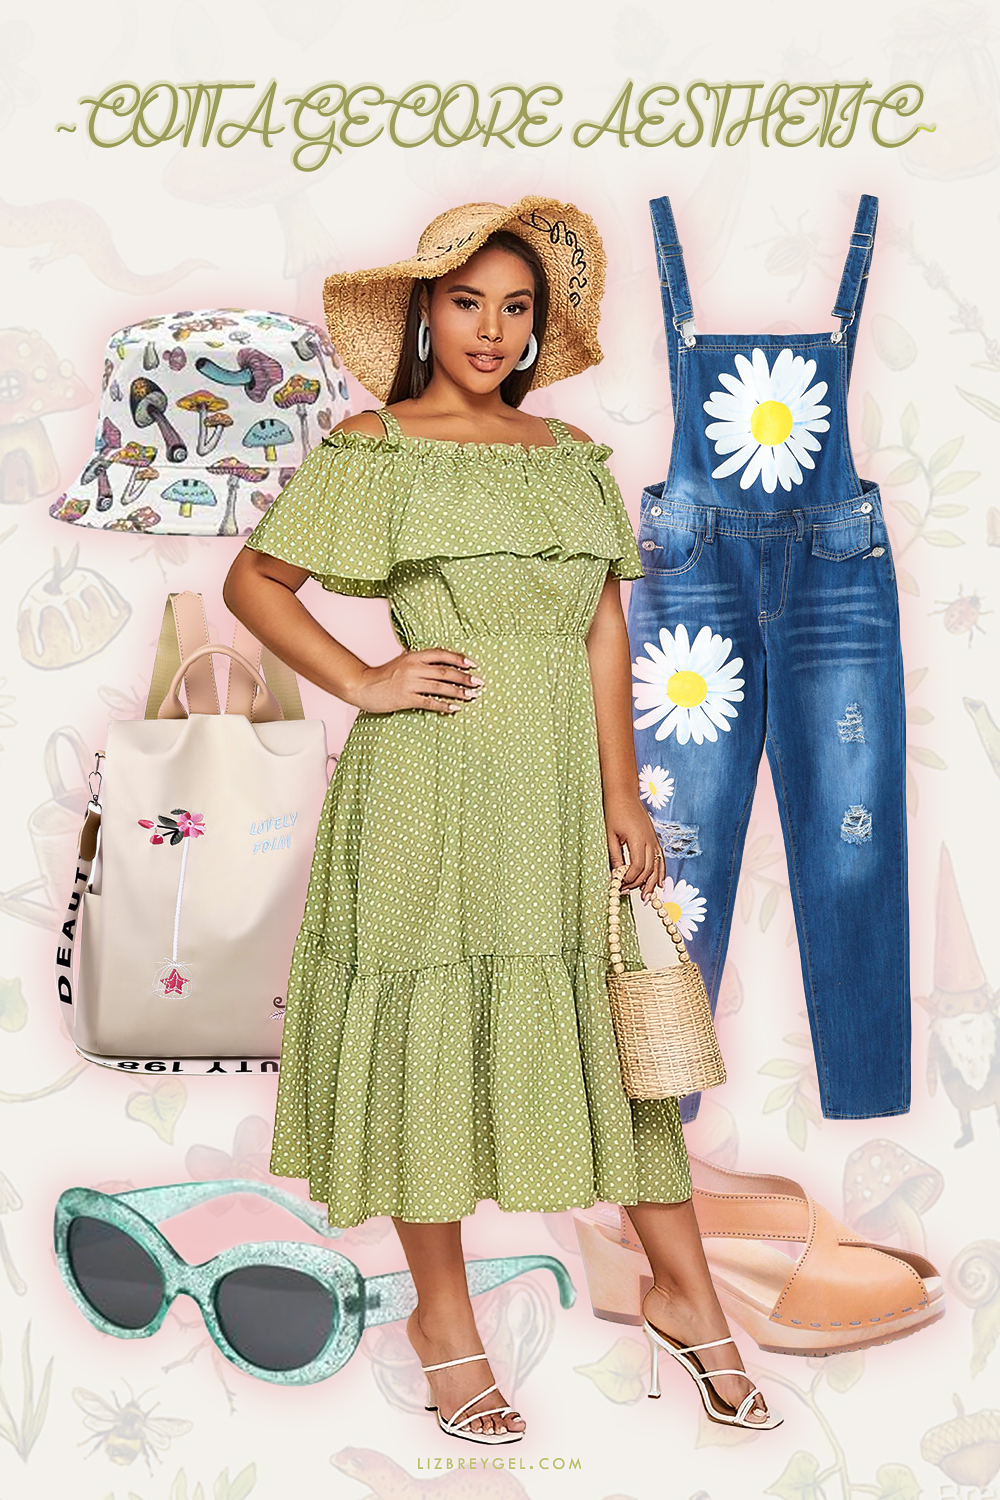 creative collage with women cottagecore fashion